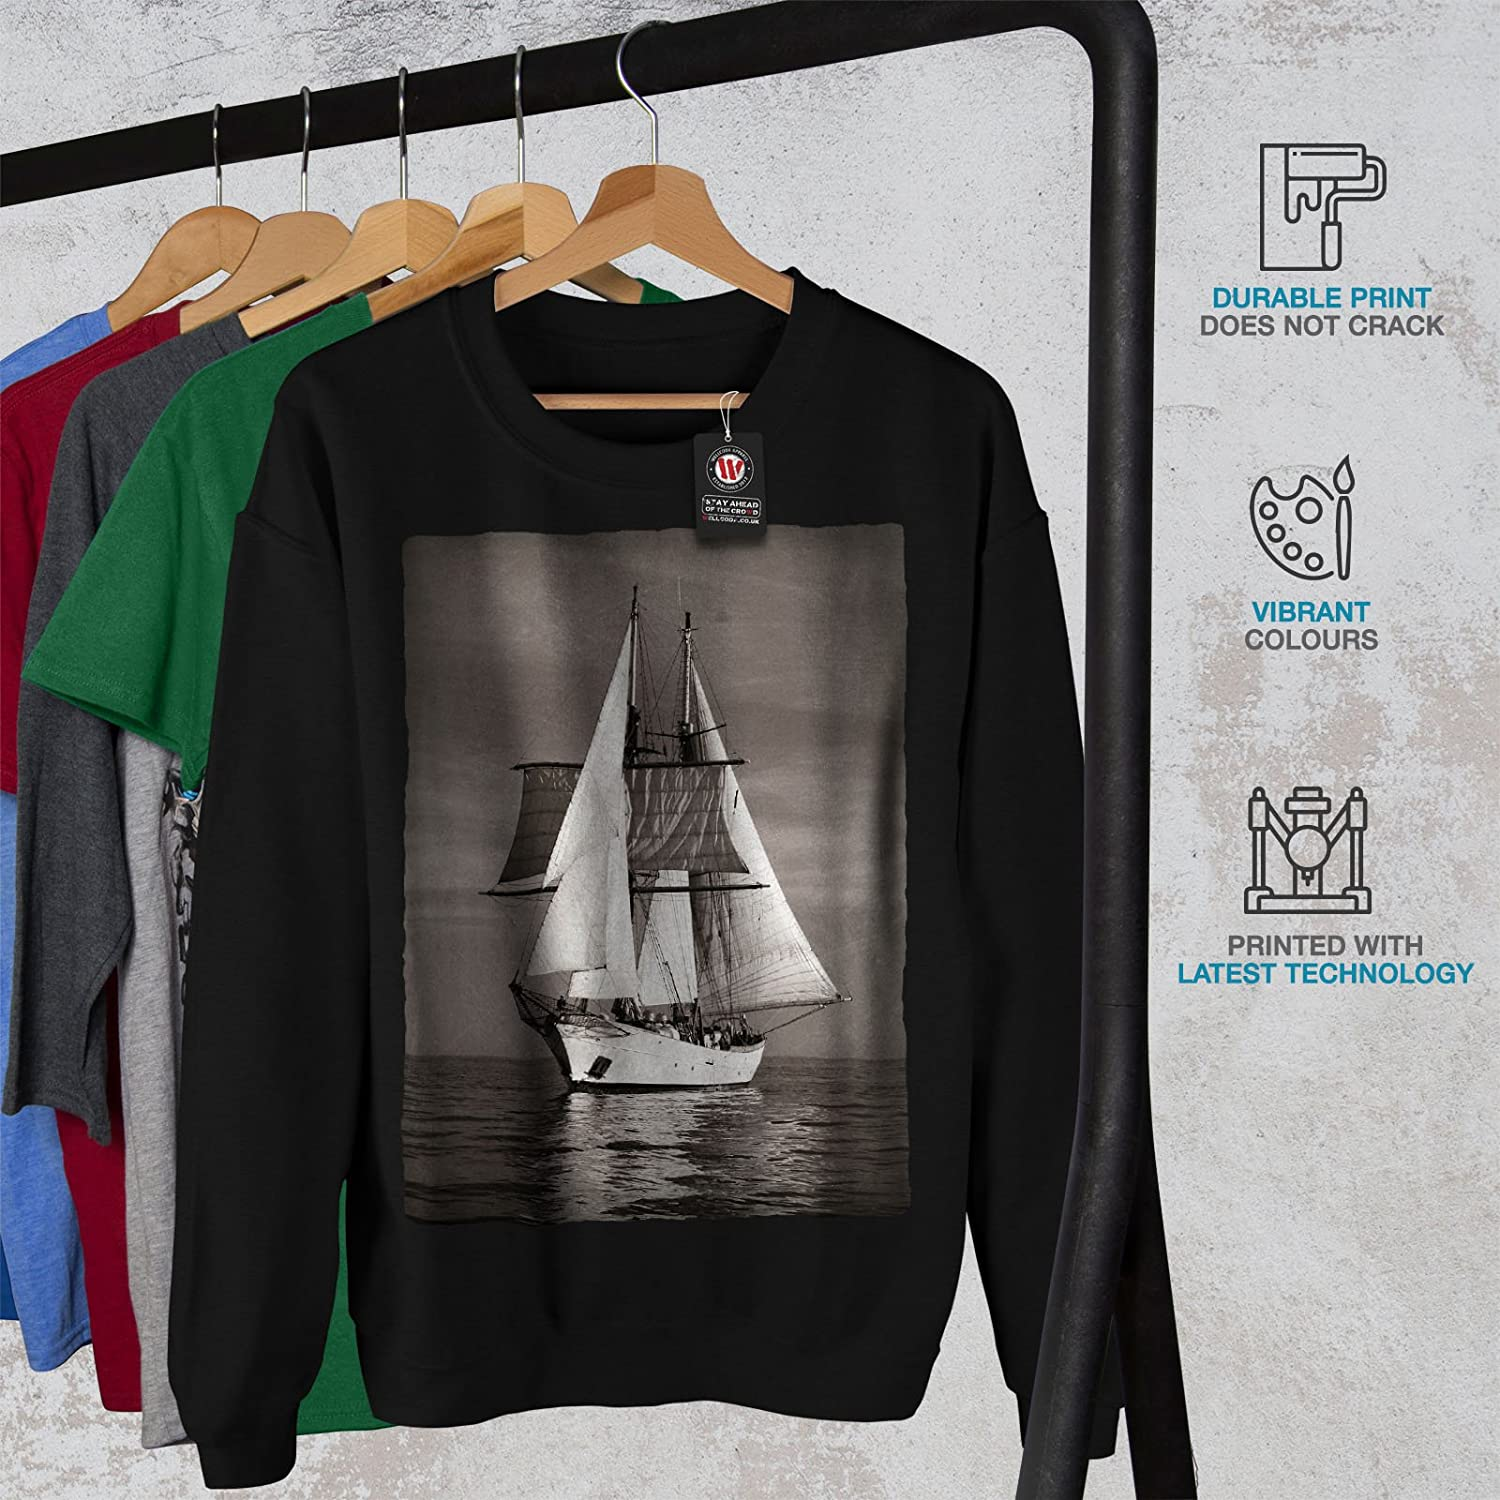 wellcoda Ship Retro Sea Mens Sweatshirt Vintage Casual Jumper